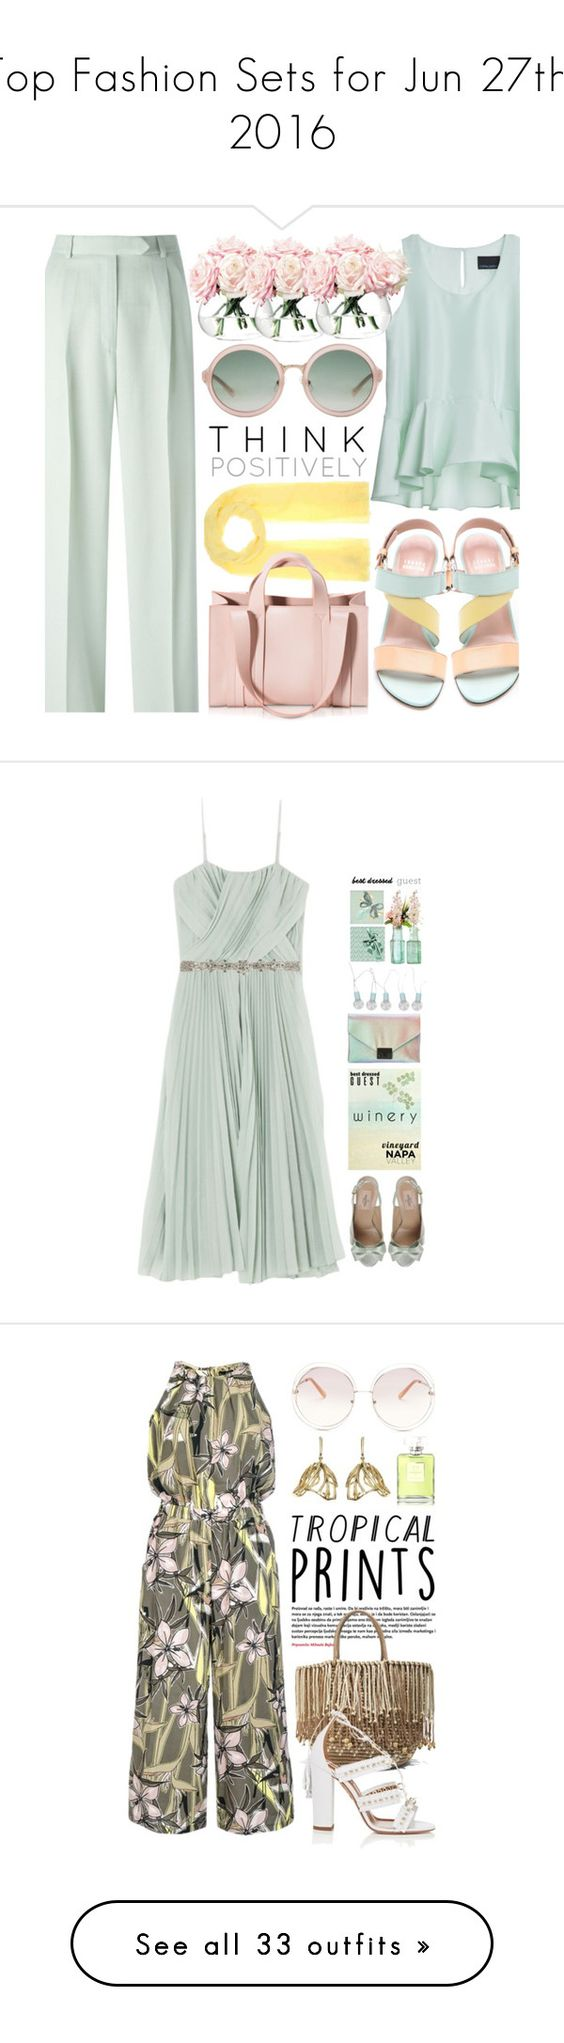 """""""Top Fashion Sets for Jun 27th, 2016"""" by polyvore ❤ liked on Polyvore featuring Stuart Weitzman, Jardin des Orangers, Cynthia Rowley, John Galliano, Corto Moltedo, LSA International, 3.1 Phillip Lim, pastel, Designs by Lauren and Valentino"""